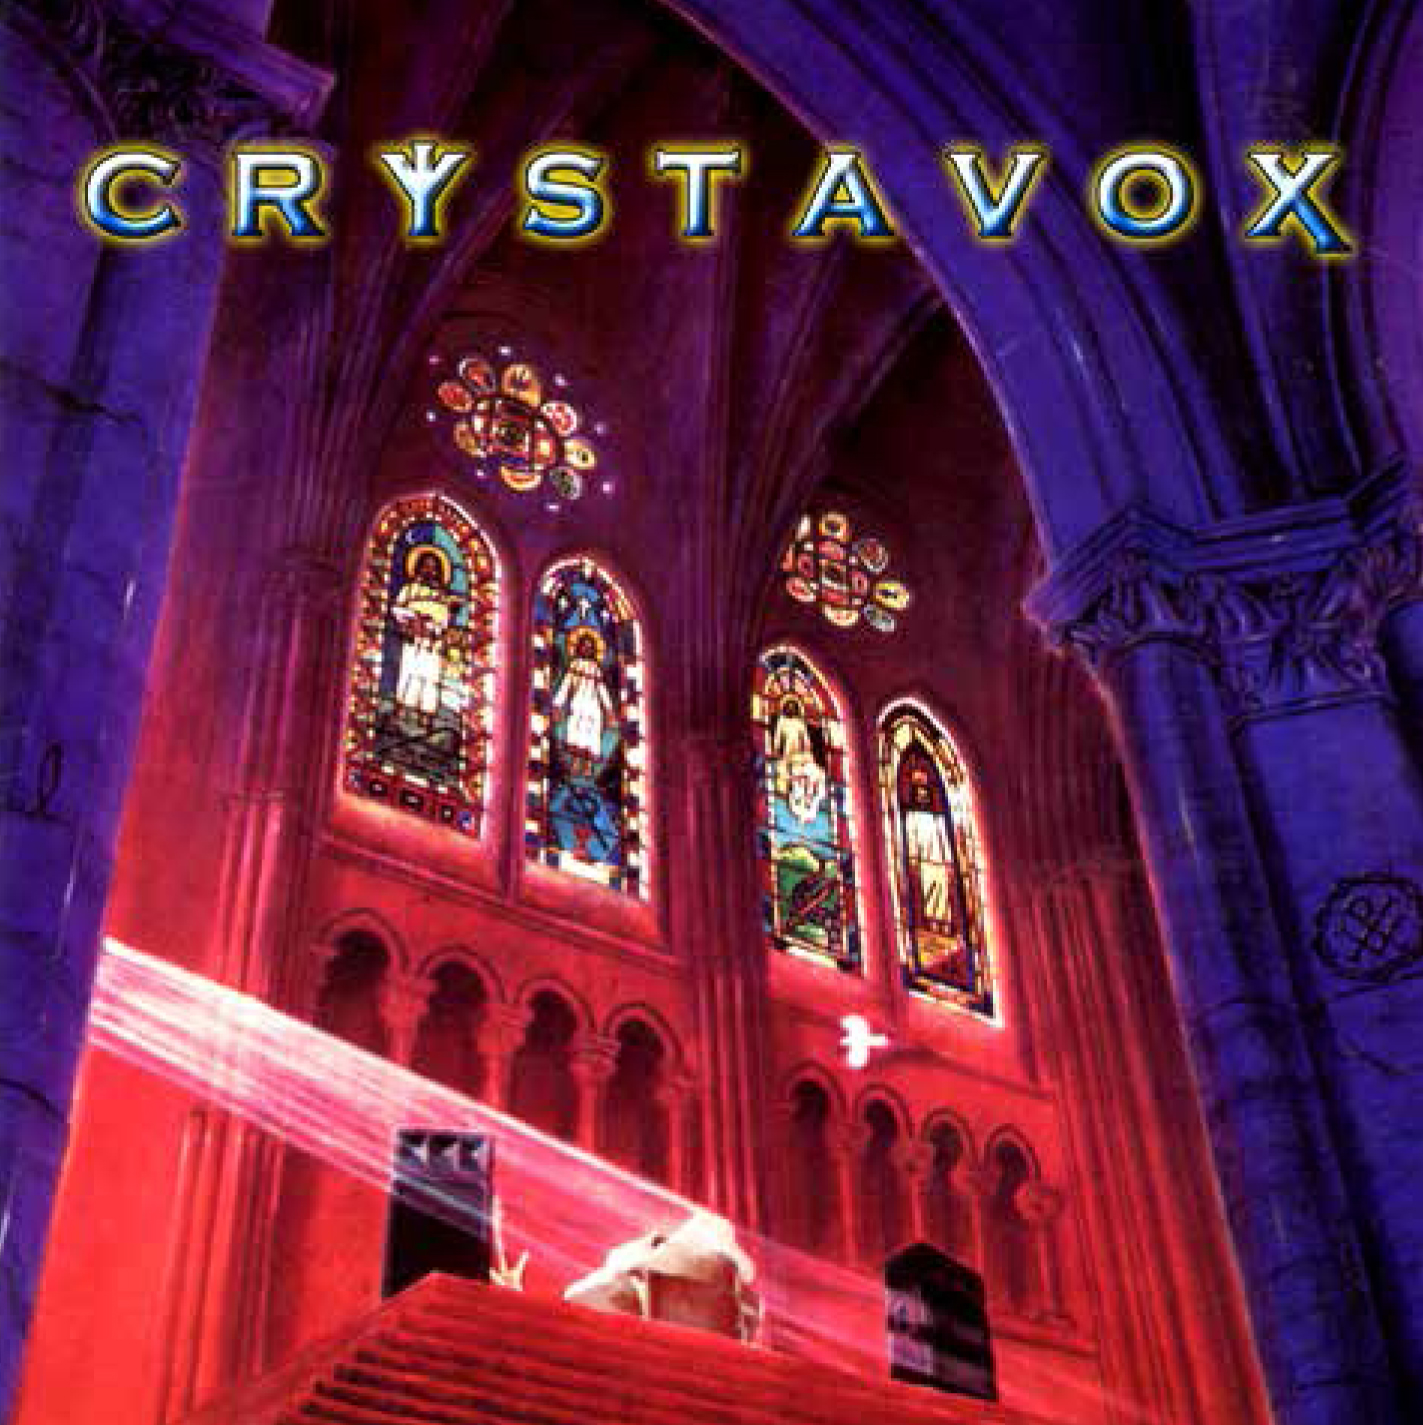 Crystavox great melodic 80s metal!